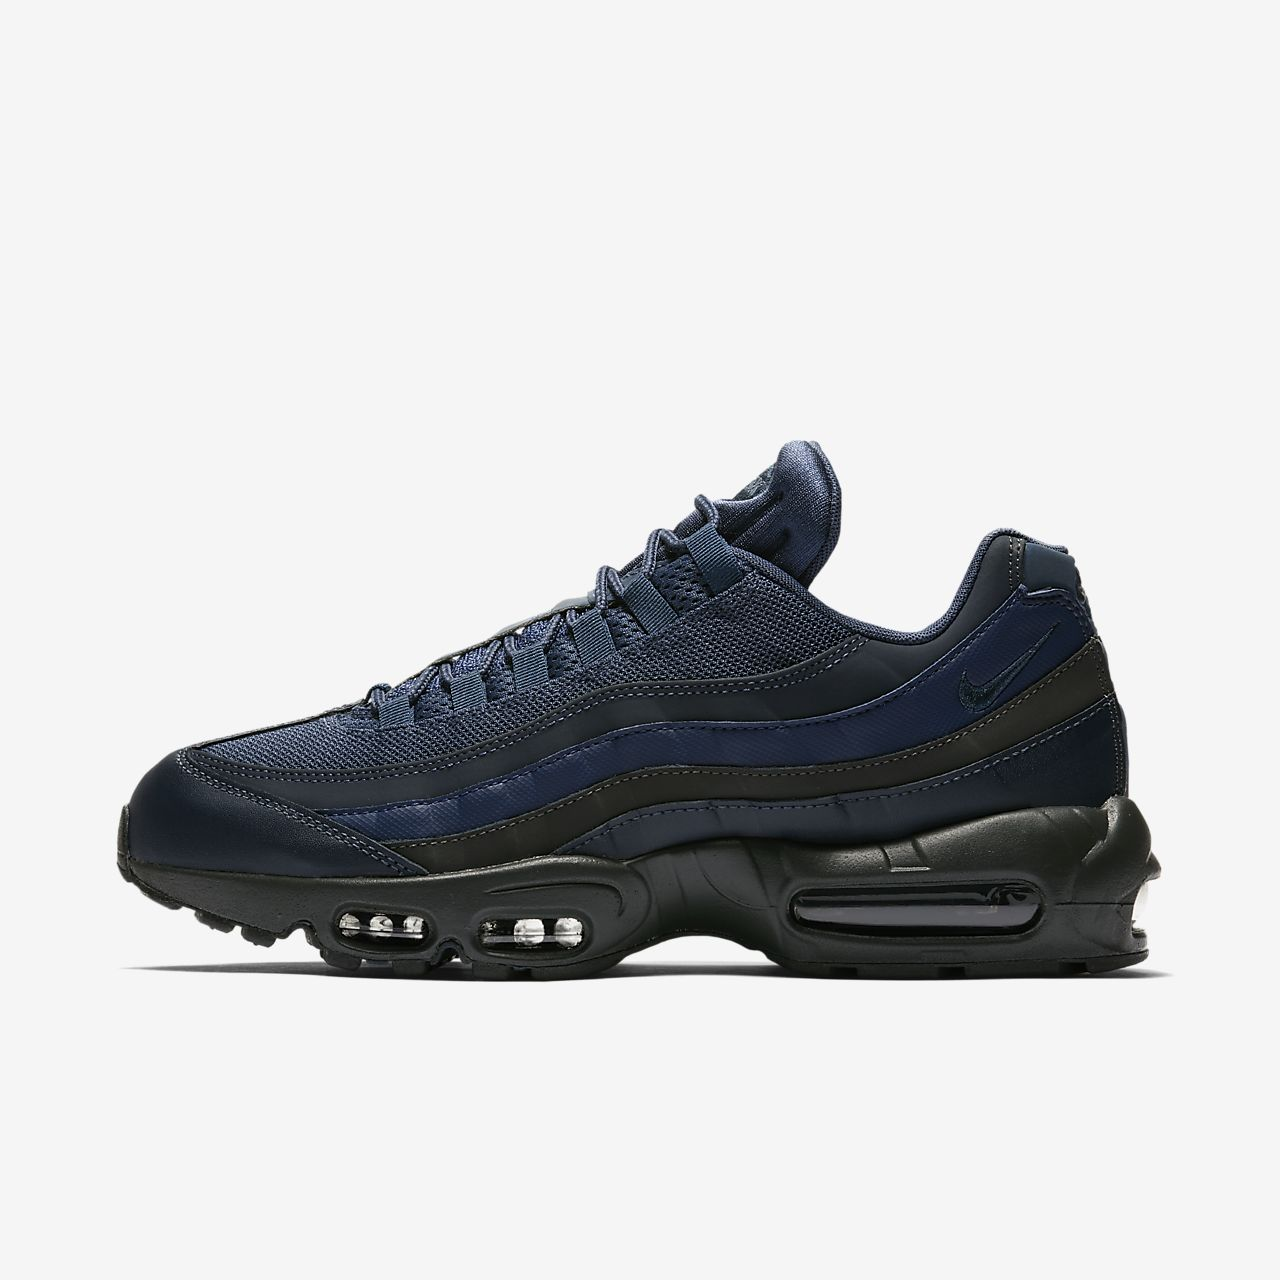 innovative design 4cf66 5c195 Men s Shoe. Nike Air Max 95 Essential